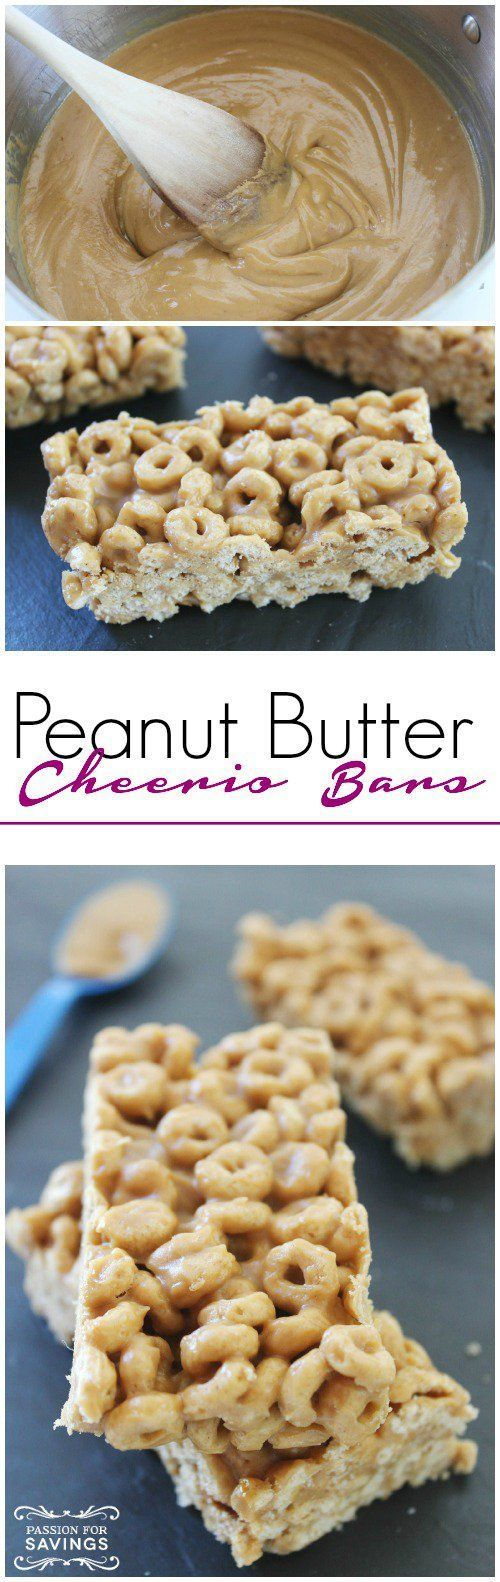 Peanut Butter Cheerio Bars! One of my favorite snack and breakfast recipes for busy on-the-go mornings!